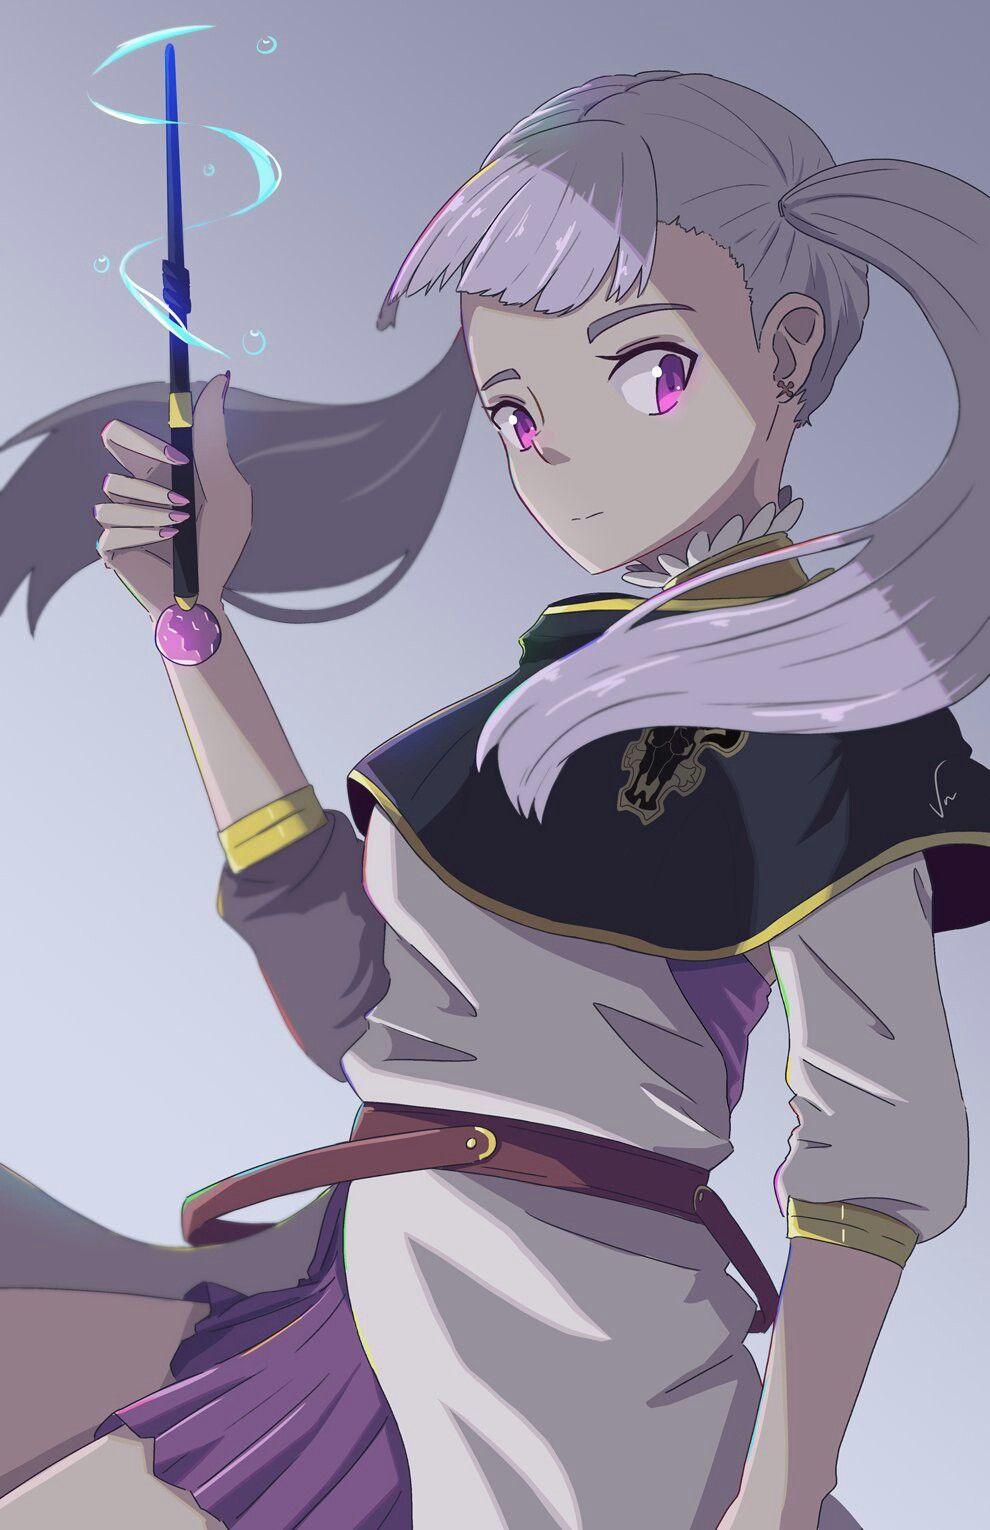 Cool Series of Anime Style Fantasy Art from Genzoman